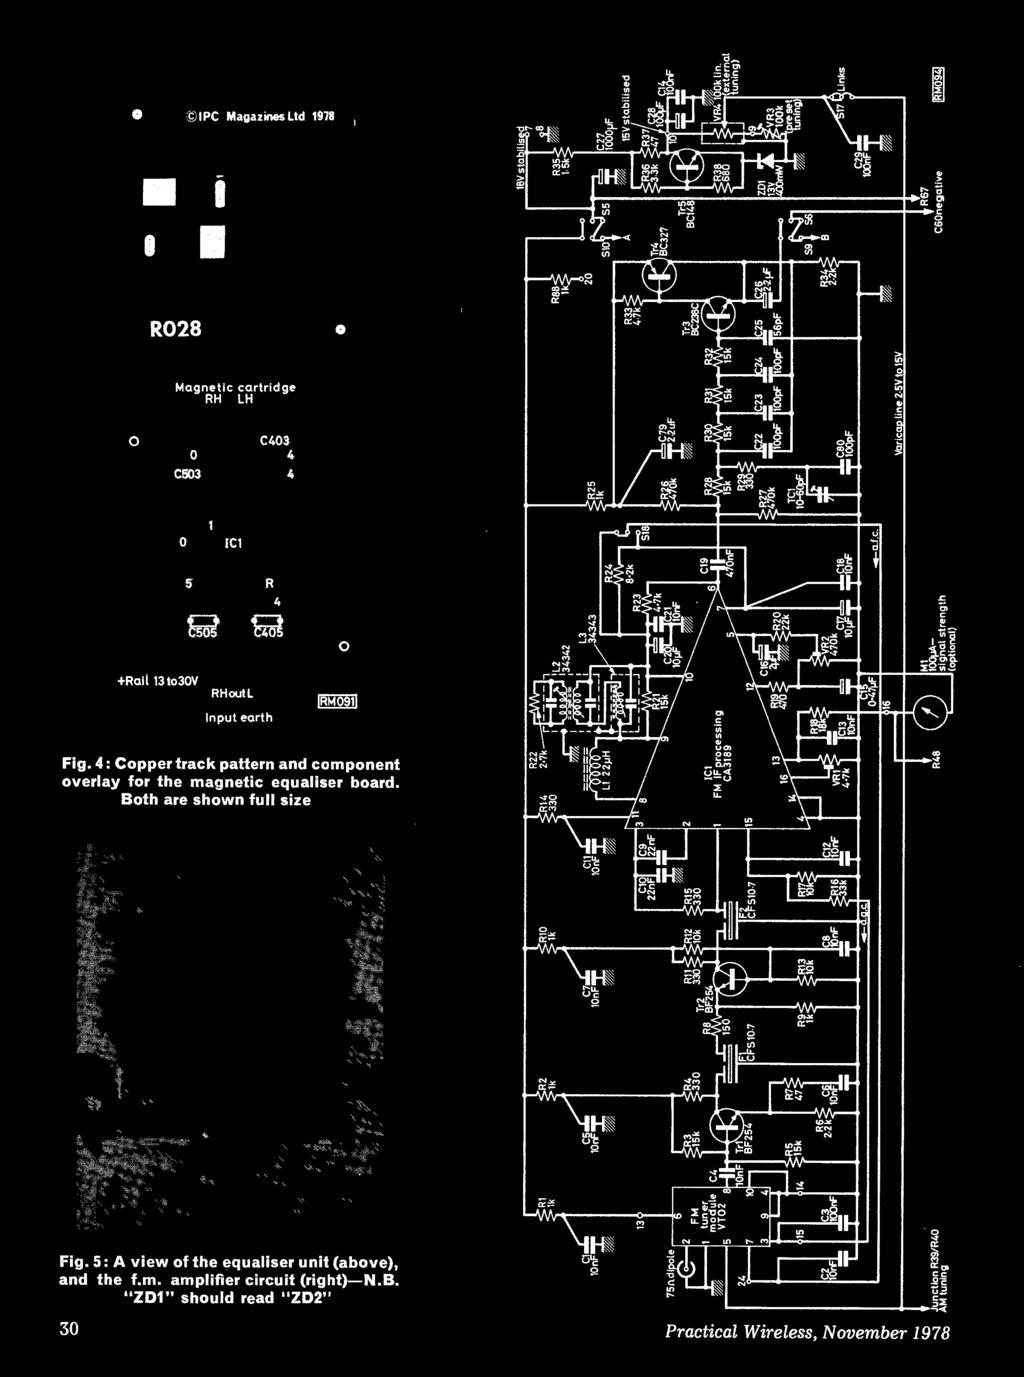 Australia 85c New Zealand South Africa 80c Malaysia 2 Pdf Download Image Bc549c Condenser Microphone Pre Amplifier Schematics Pc 4 Copper Track Pattern And Component Overlay For The Magnetic